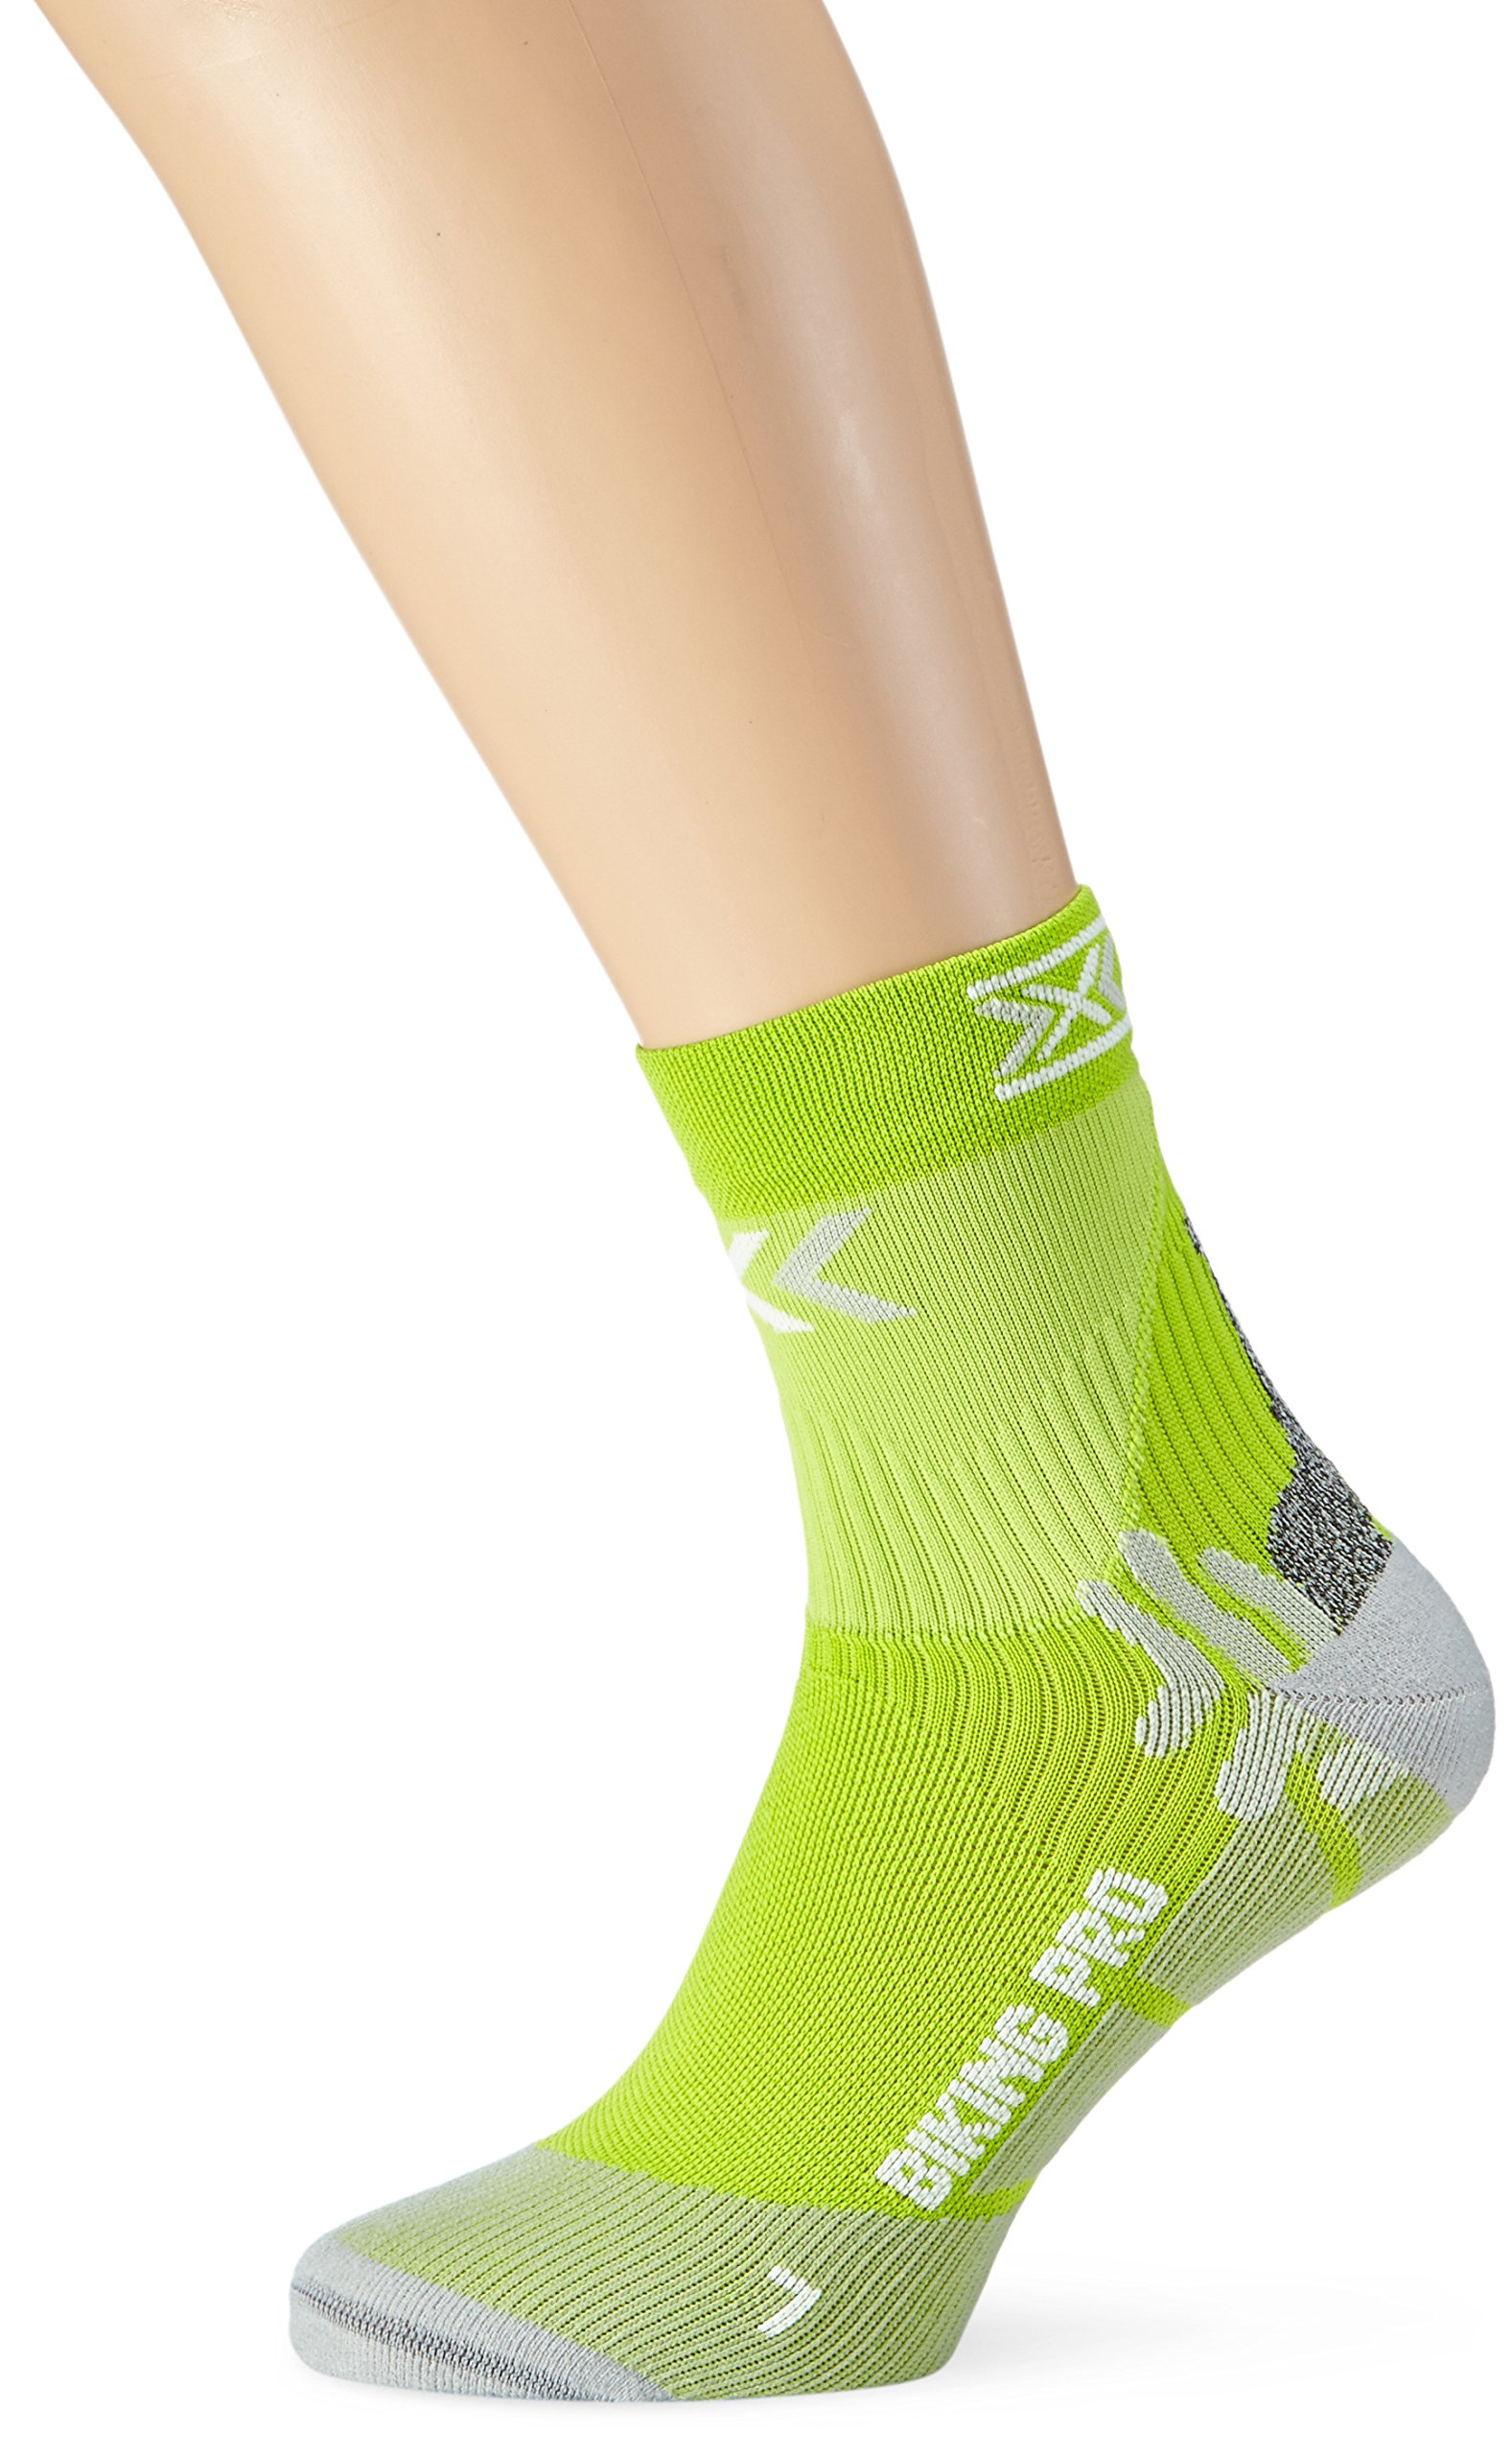 X-Socks Herren Socken BIKING PRO, White/Black, 35/38, X020370